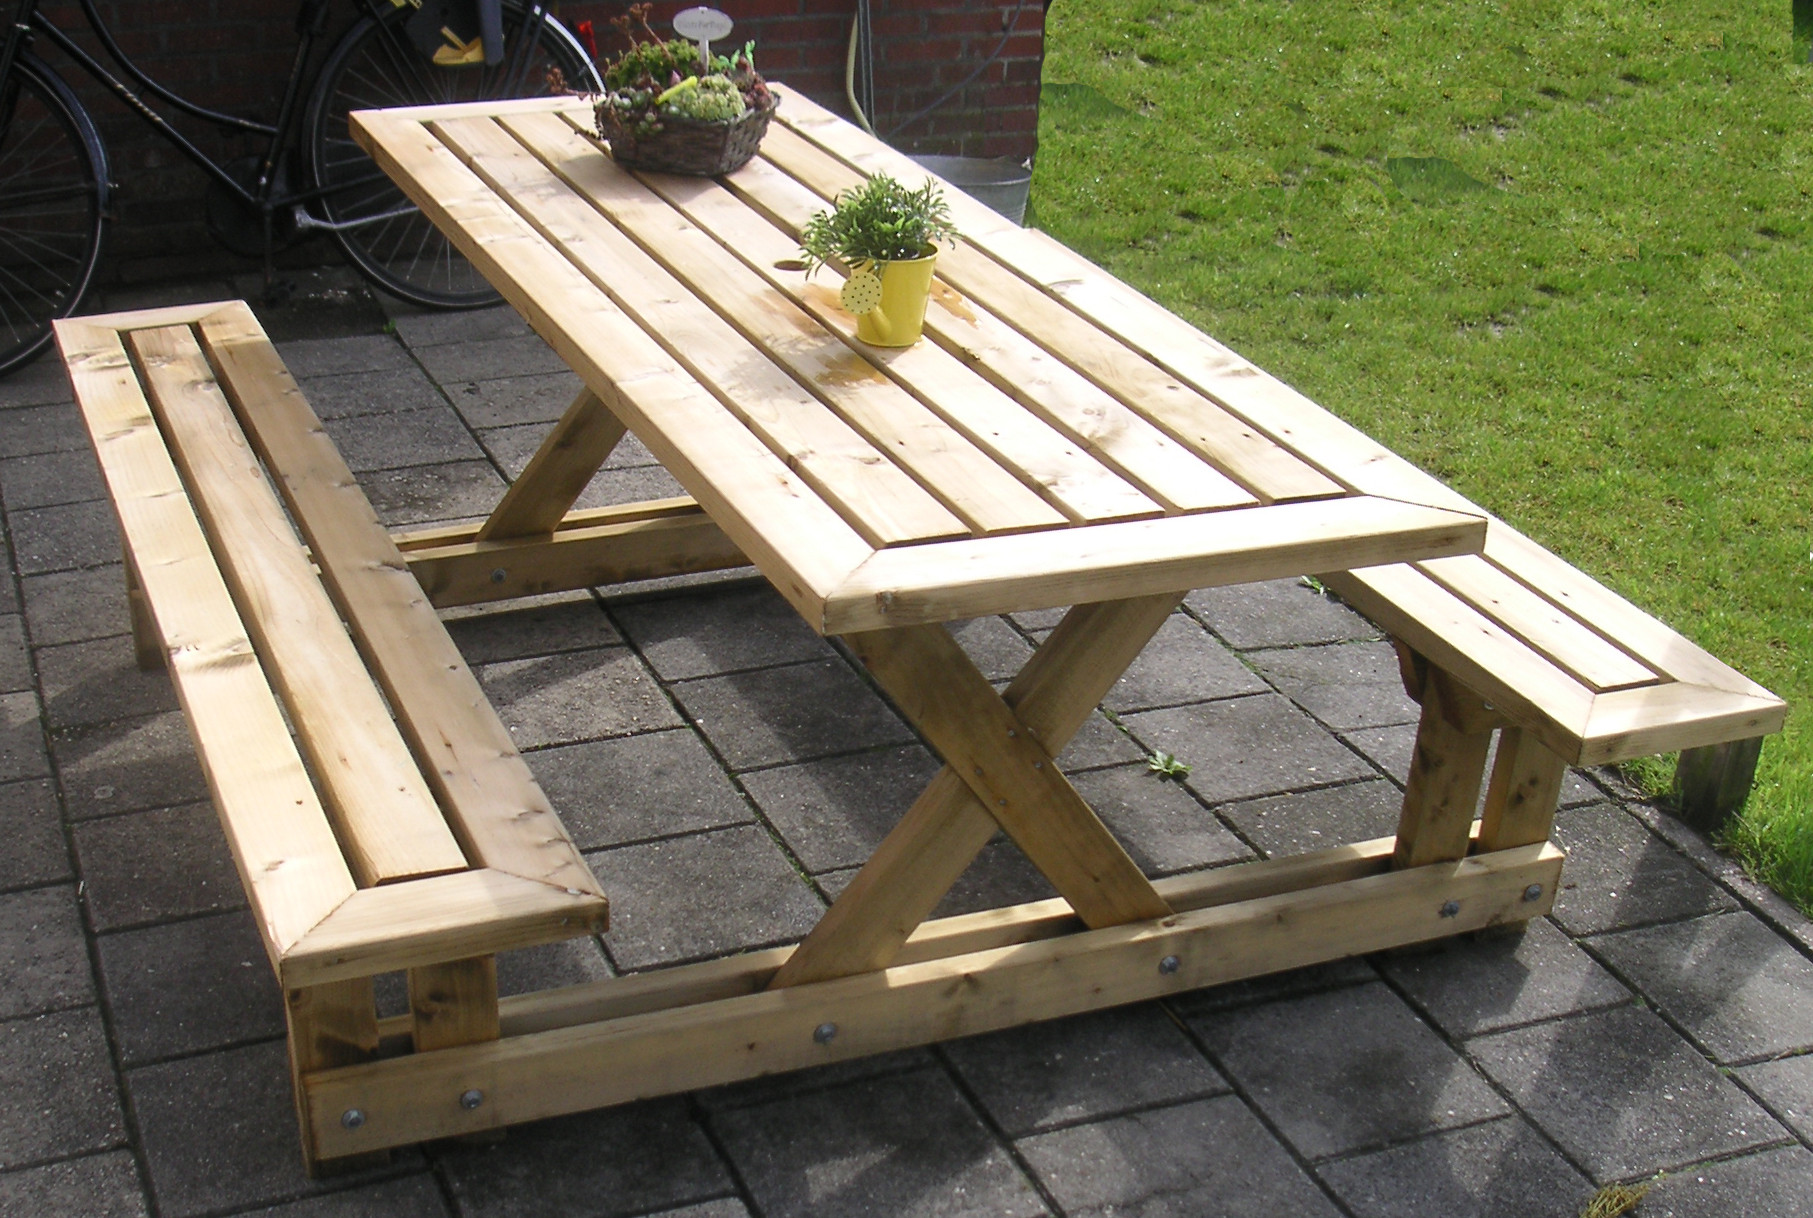 Best ideas about DIY Folding Picnic Table . Save or Pin picnic table Now.